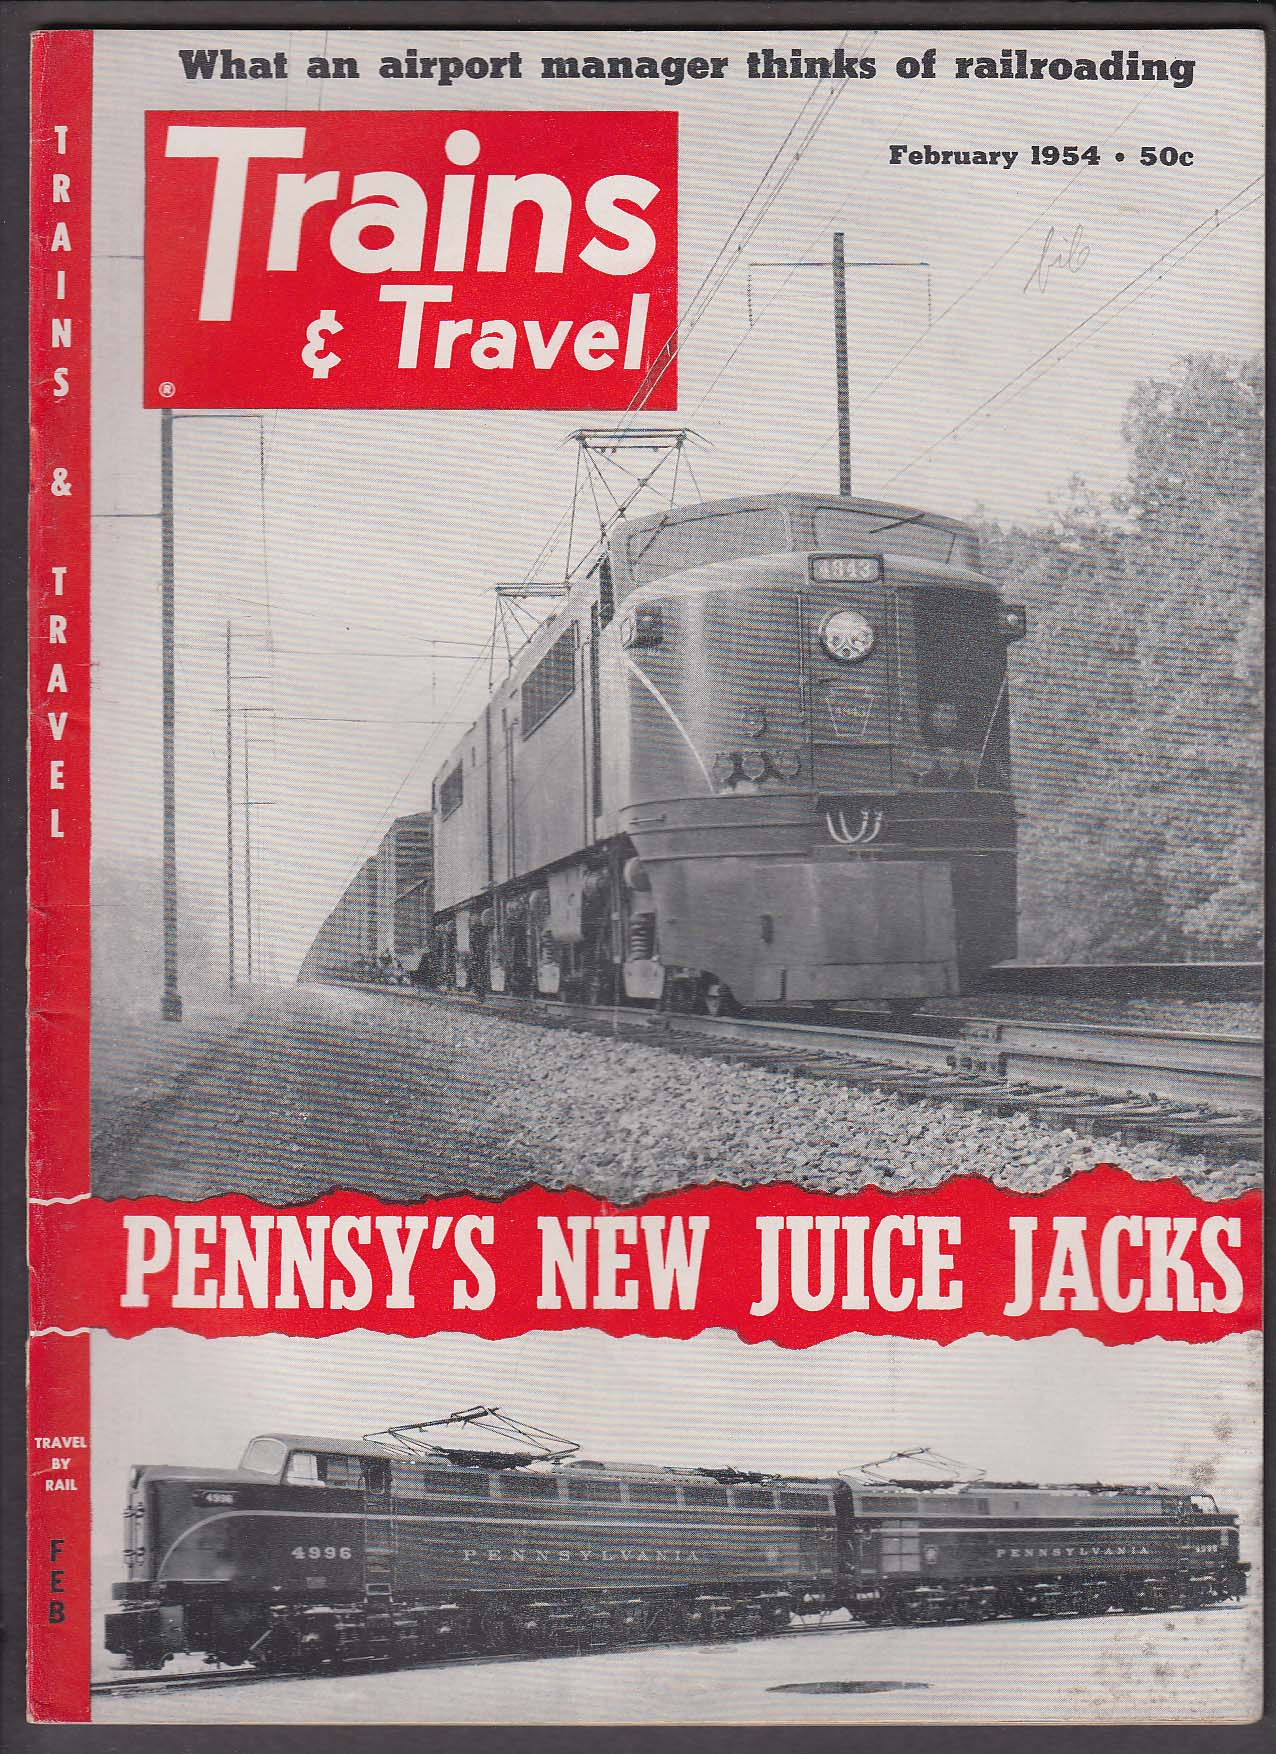 TRAINS & TRAVEL Pennsy Freight Electric GG-1 P5a Bob Schmidt + 2 1954